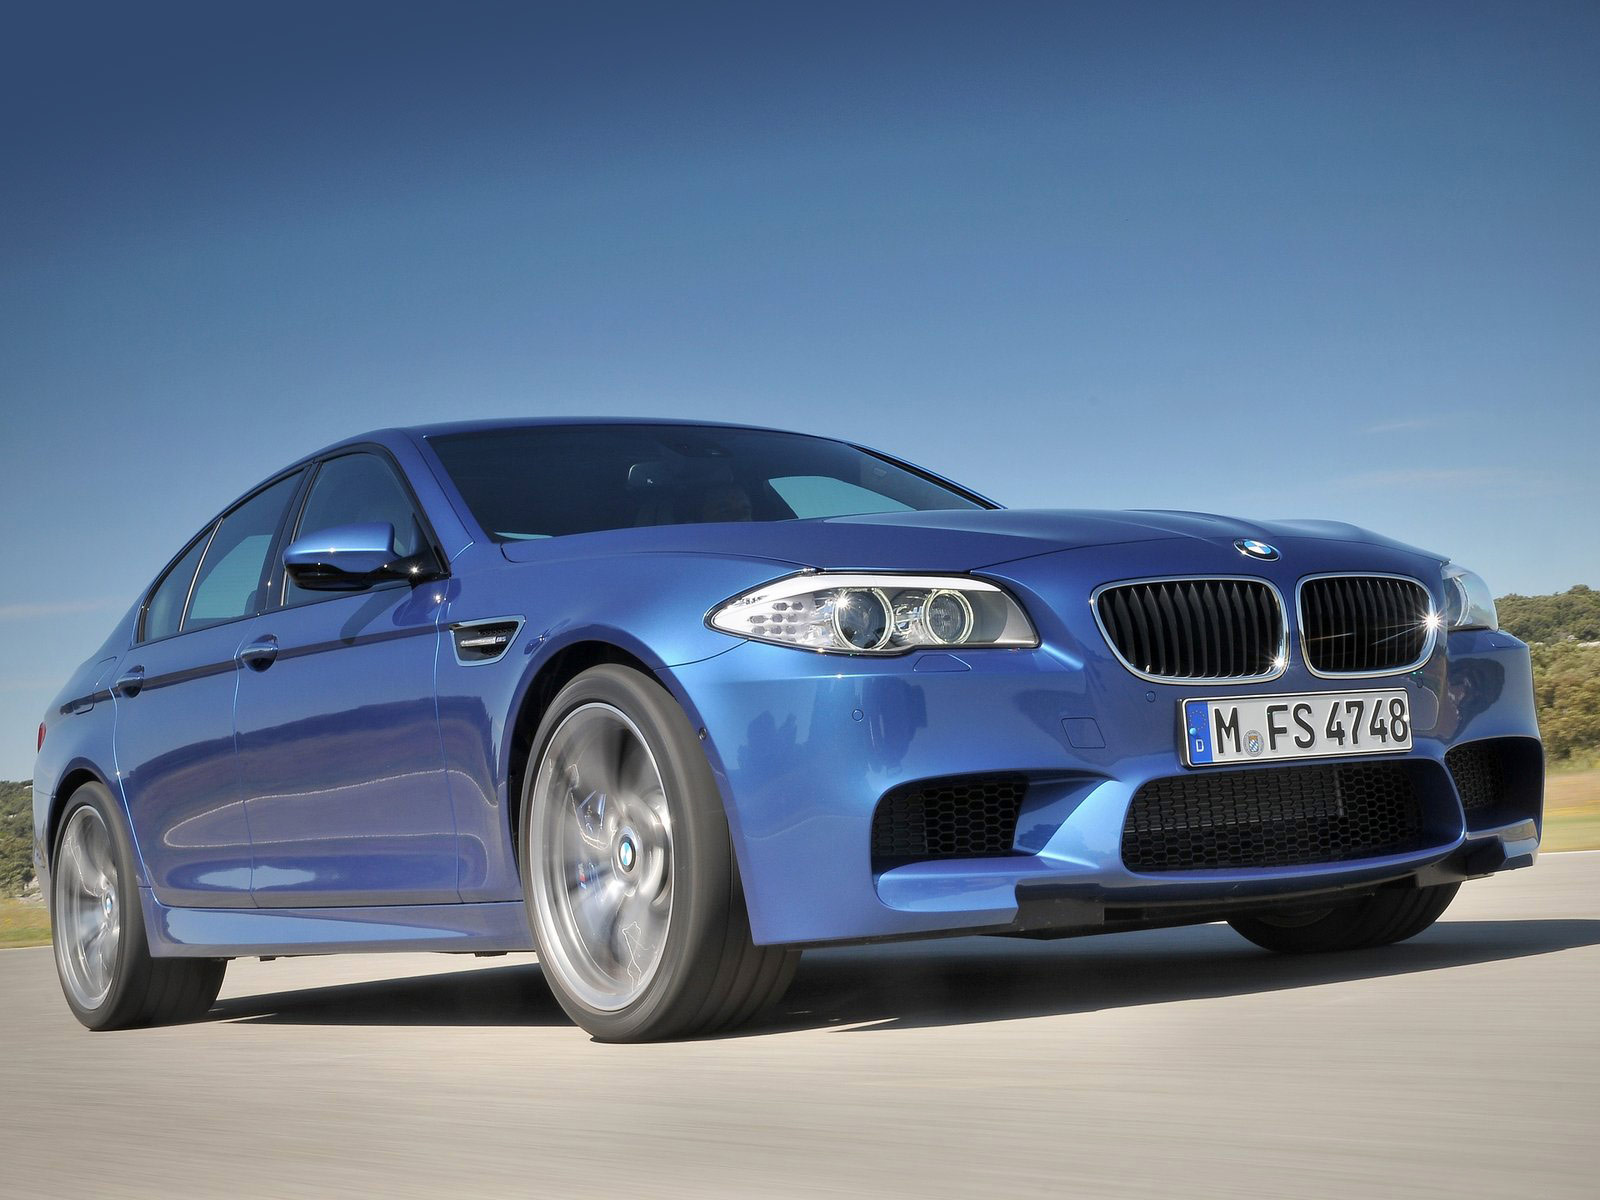 2012 BMW M5 Desktop Wallpapers. Accident lawyers info.